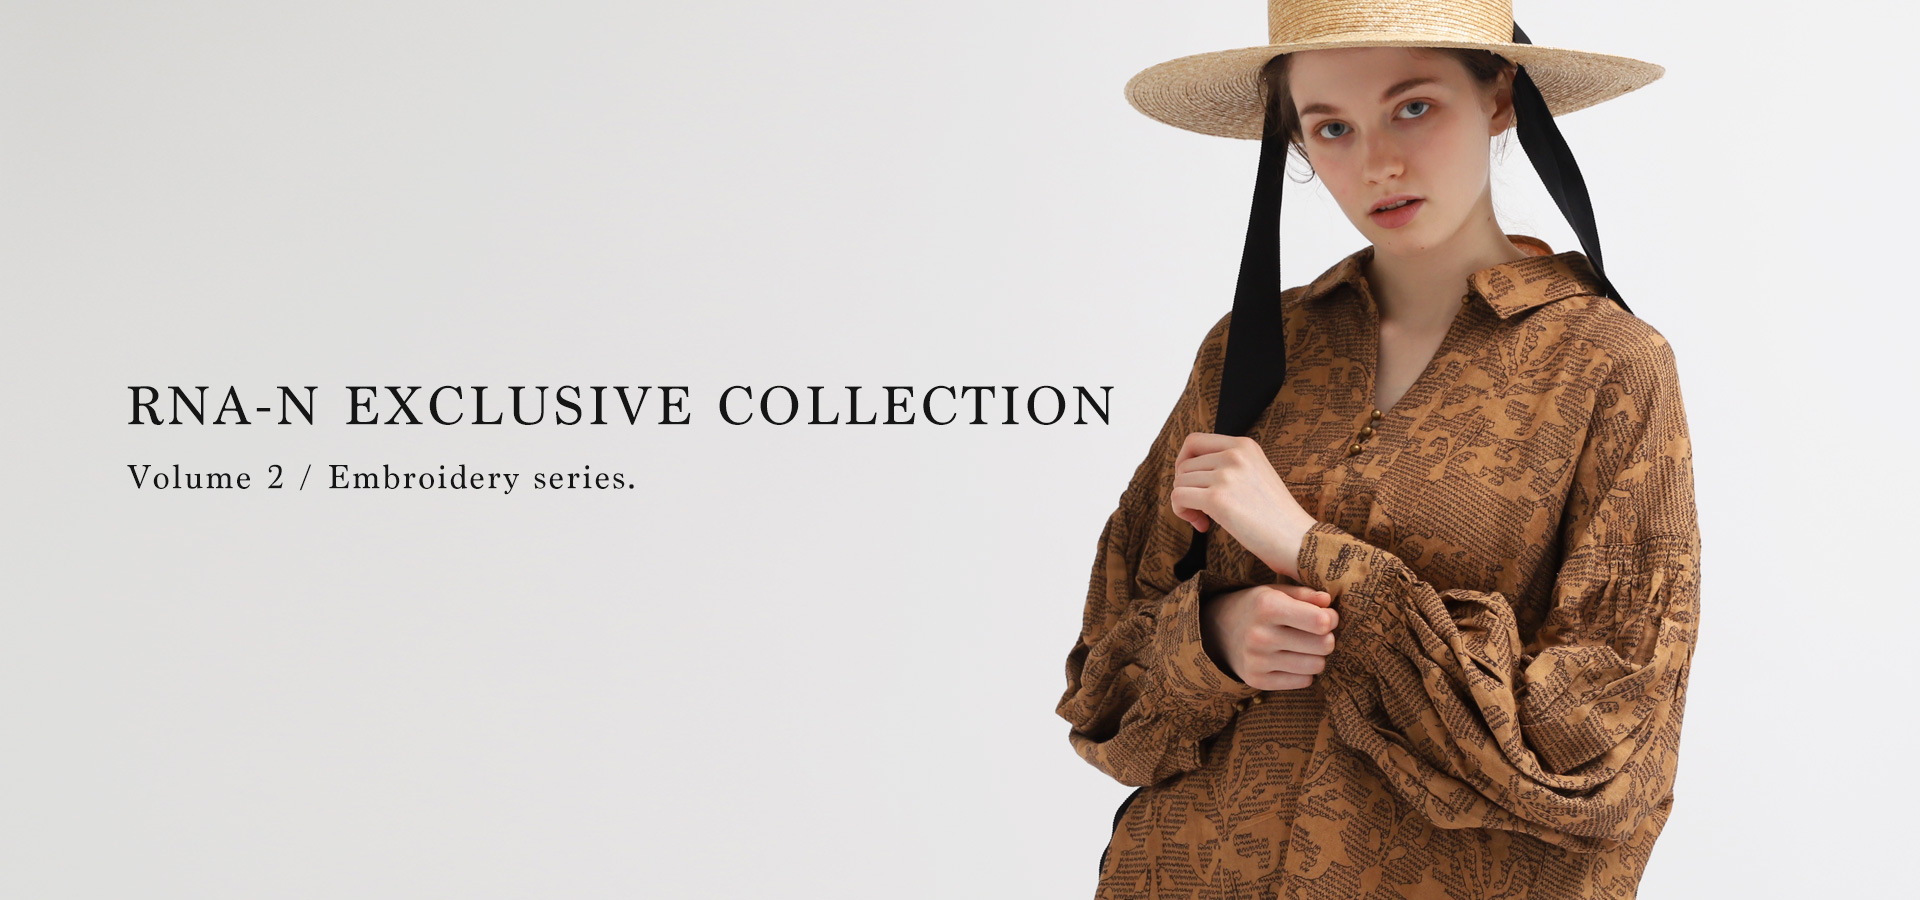 RNA-N EXCLUSIVE COLLECTION 2